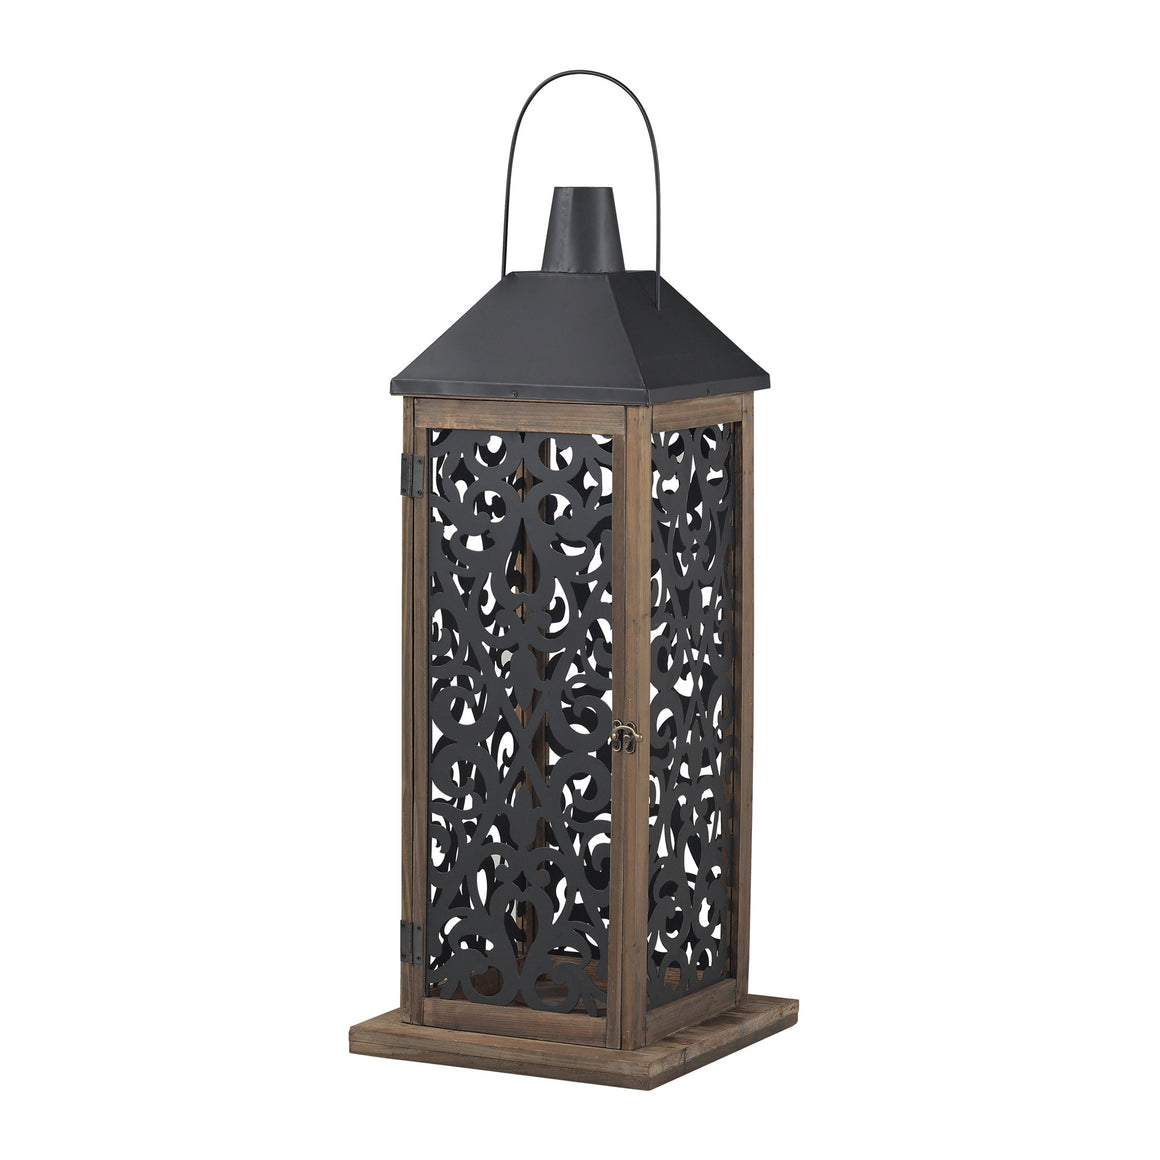 Darfield-Large Lantern With Filigree Paneling  by Sterling